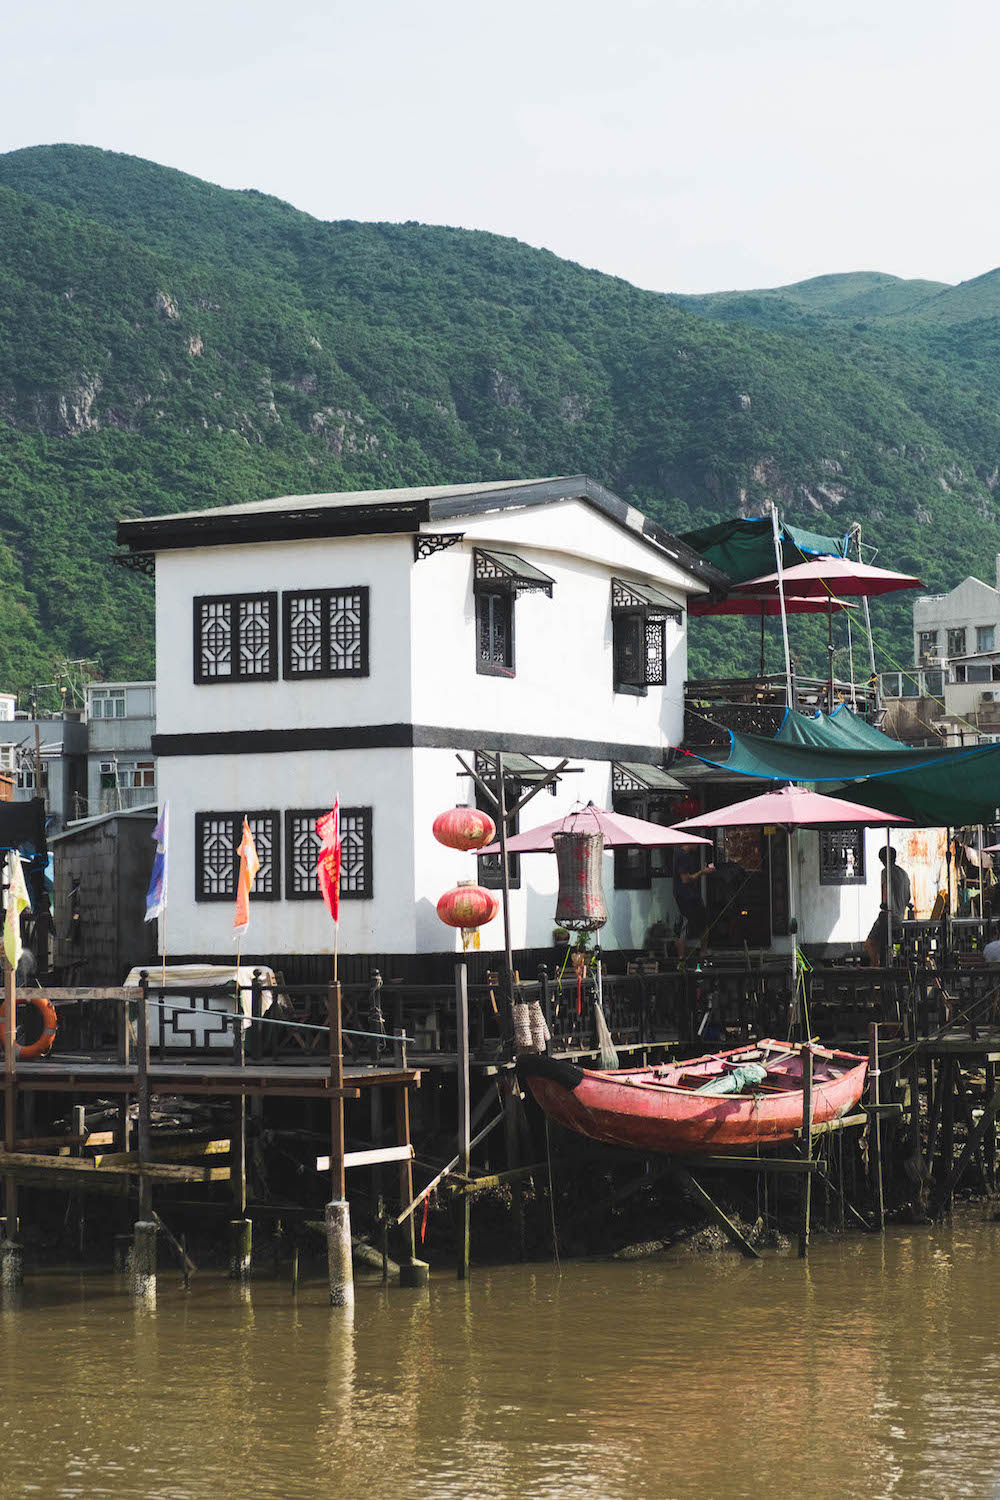 When I tell my mother I'm going to Tai O fishing village for the day, she tells me a few things:  - 1. Join a Chinese pink dolphin sightseeing tour.2. Go to Tai O Heritage Hotel.3. Bring her back salted eggs and shrimp paste.